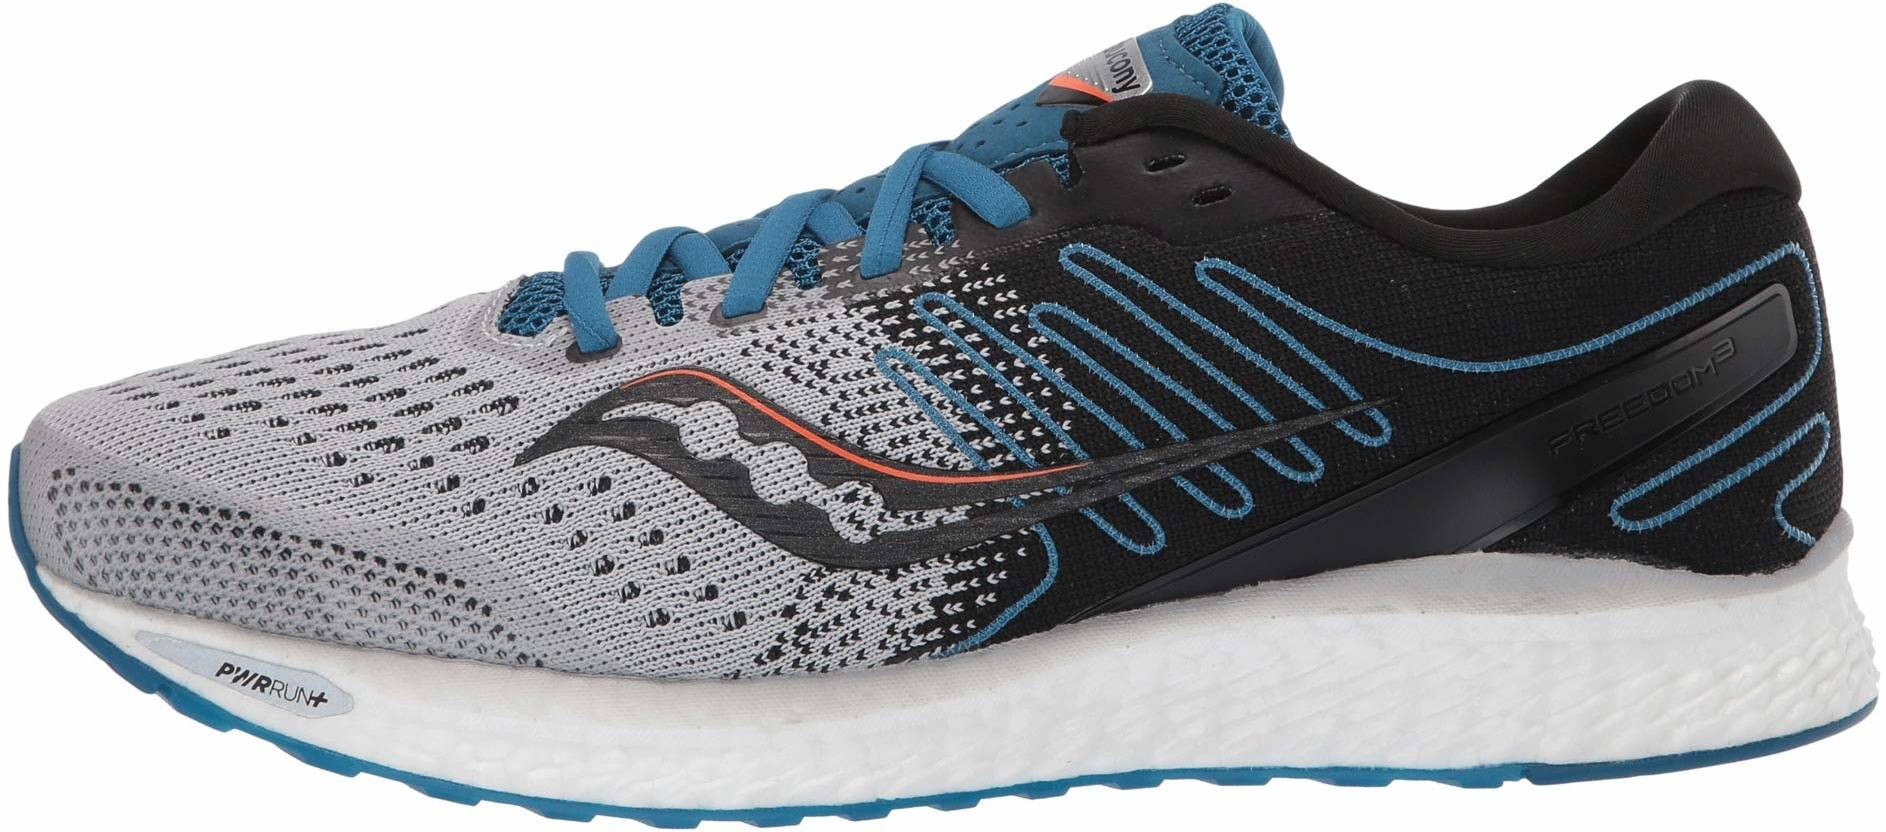 Only $120 + Review of Saucony Freedom 3